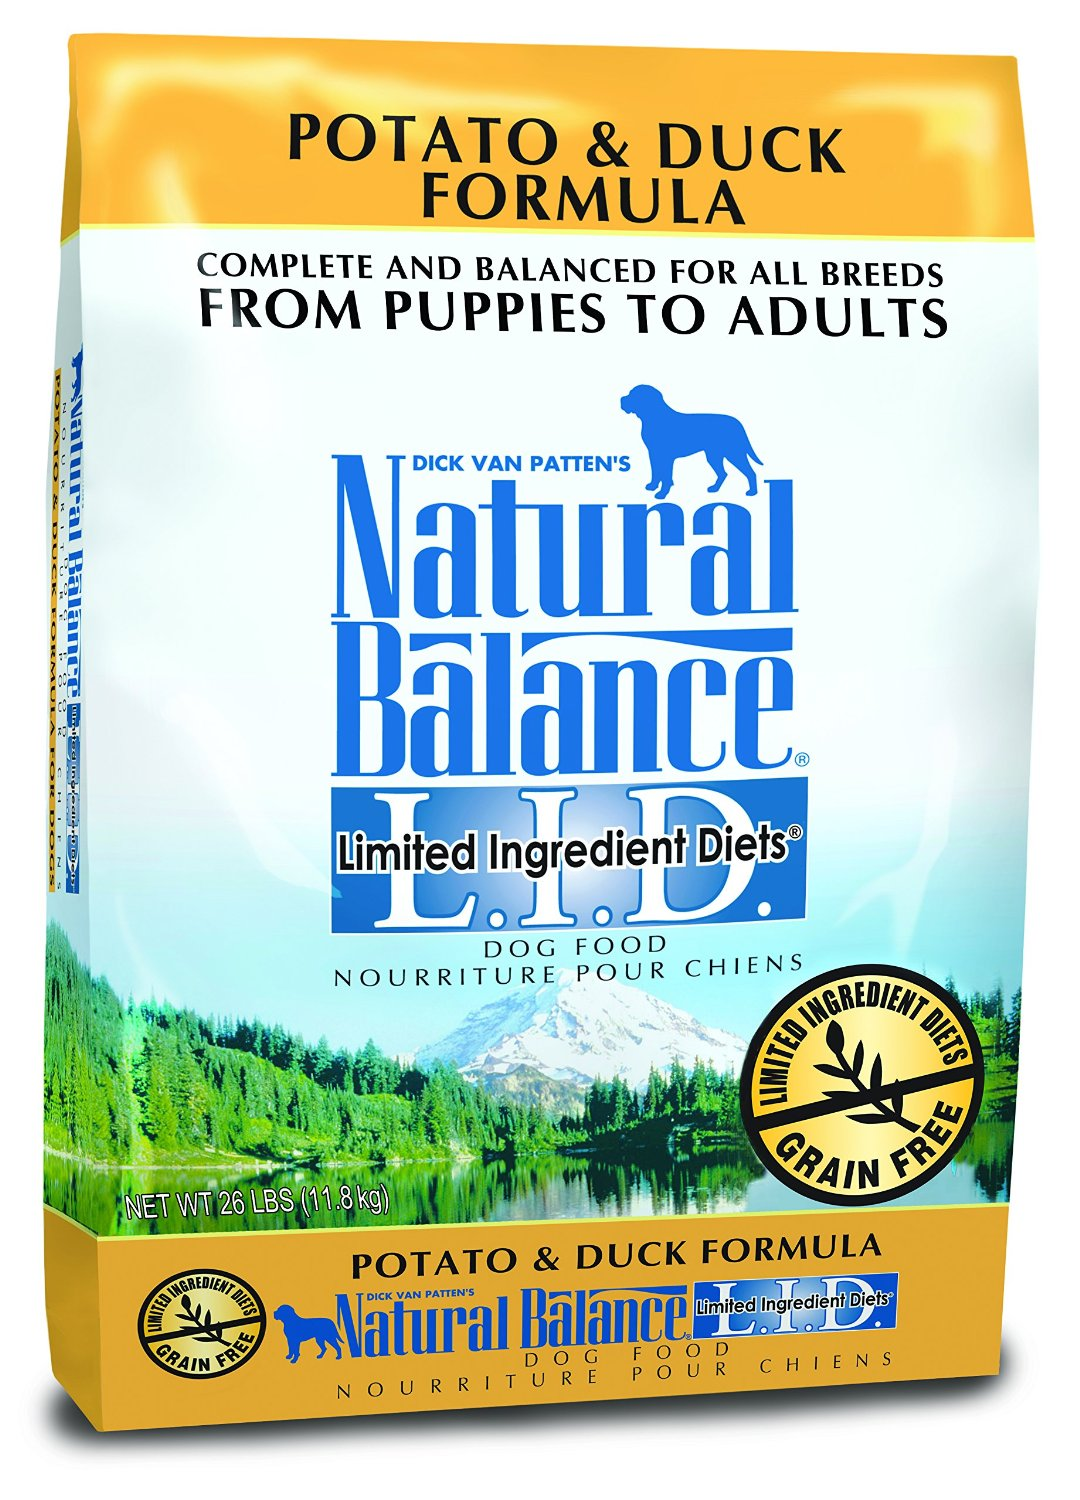 Natural Balance Organic LID Limited Ingredient Diets Dry Dog Formulas